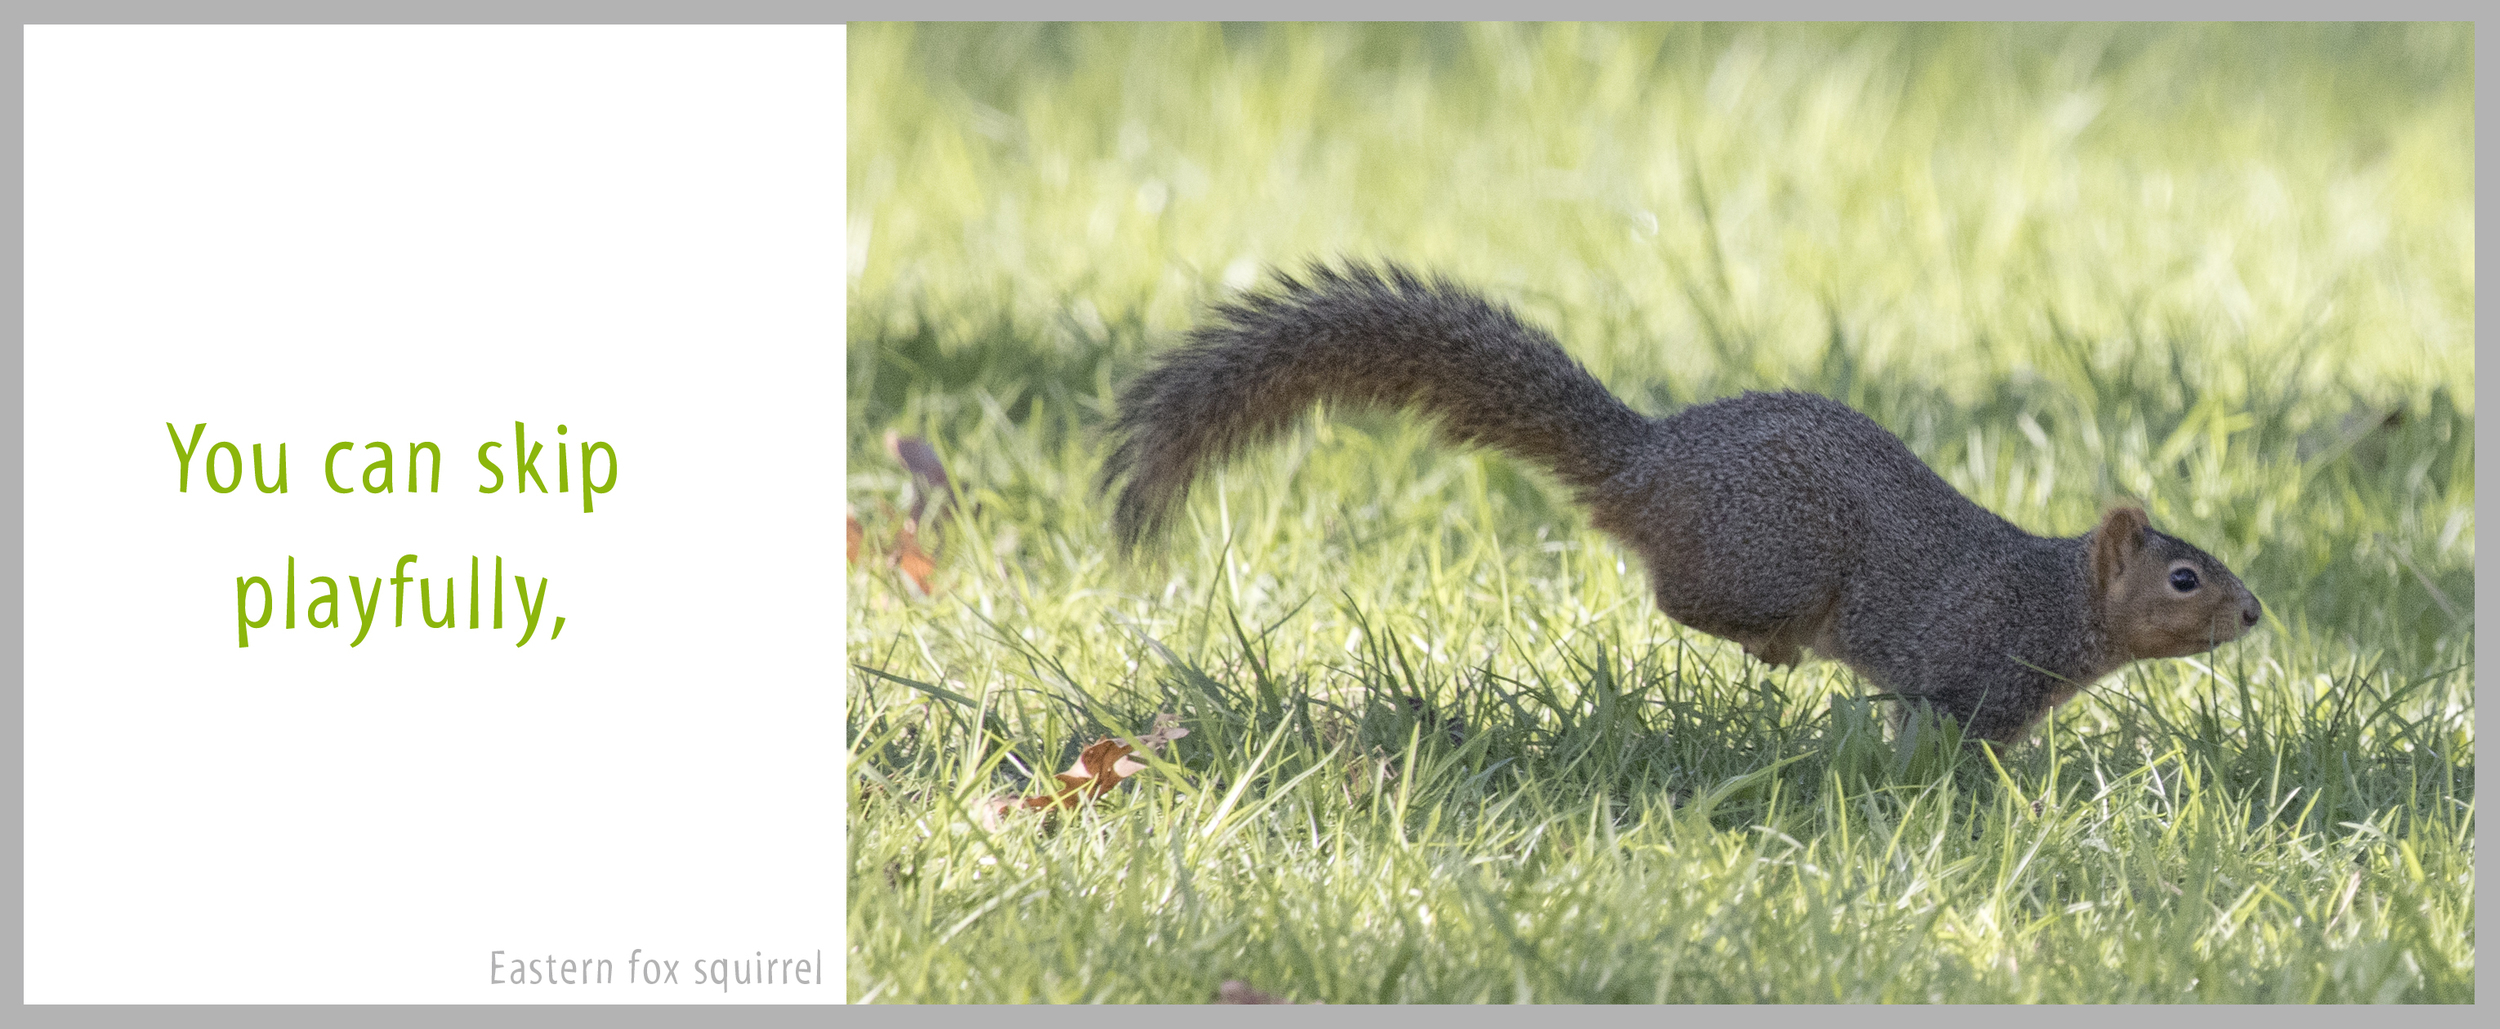 09Bond-1444.Squirrel.jpg